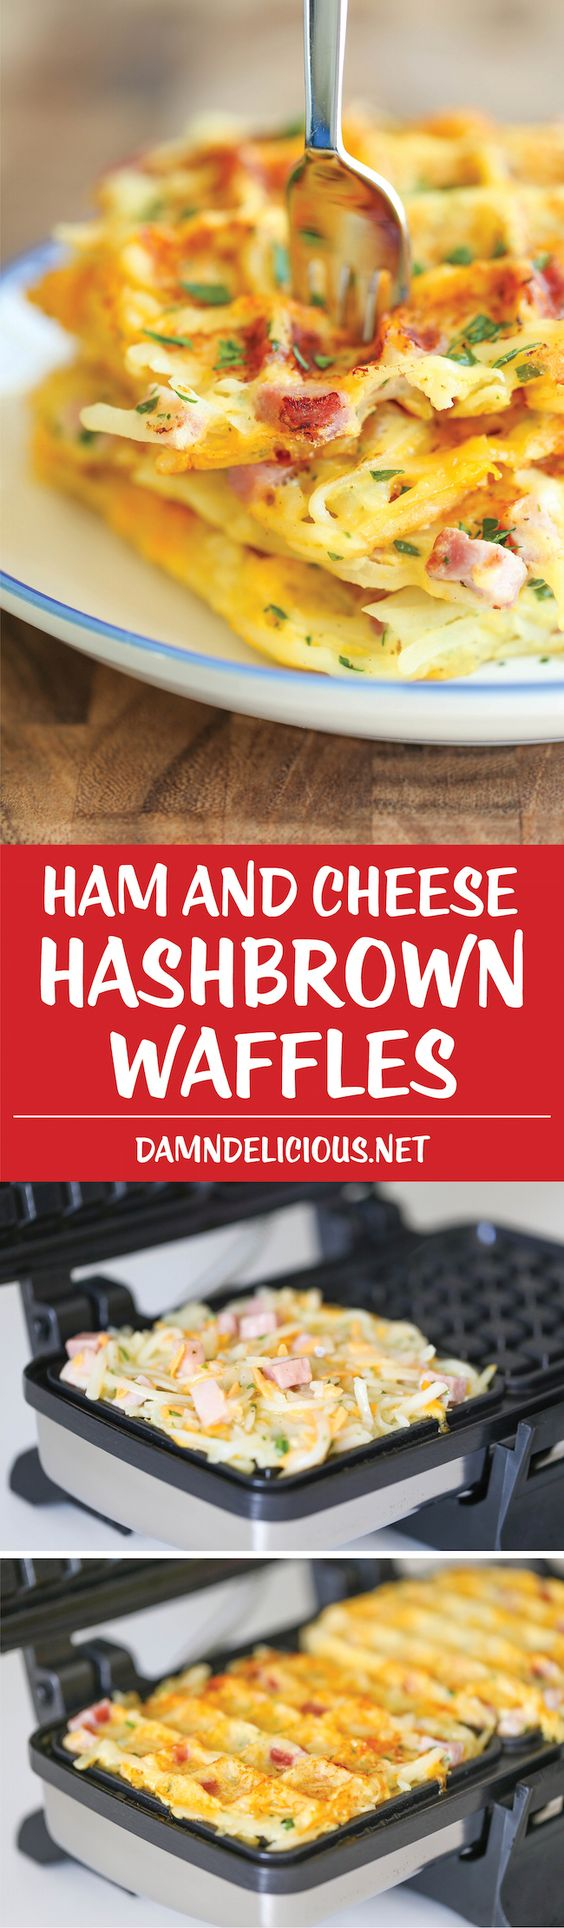 Ham and cheese, Waffles and Hams on Pinterest